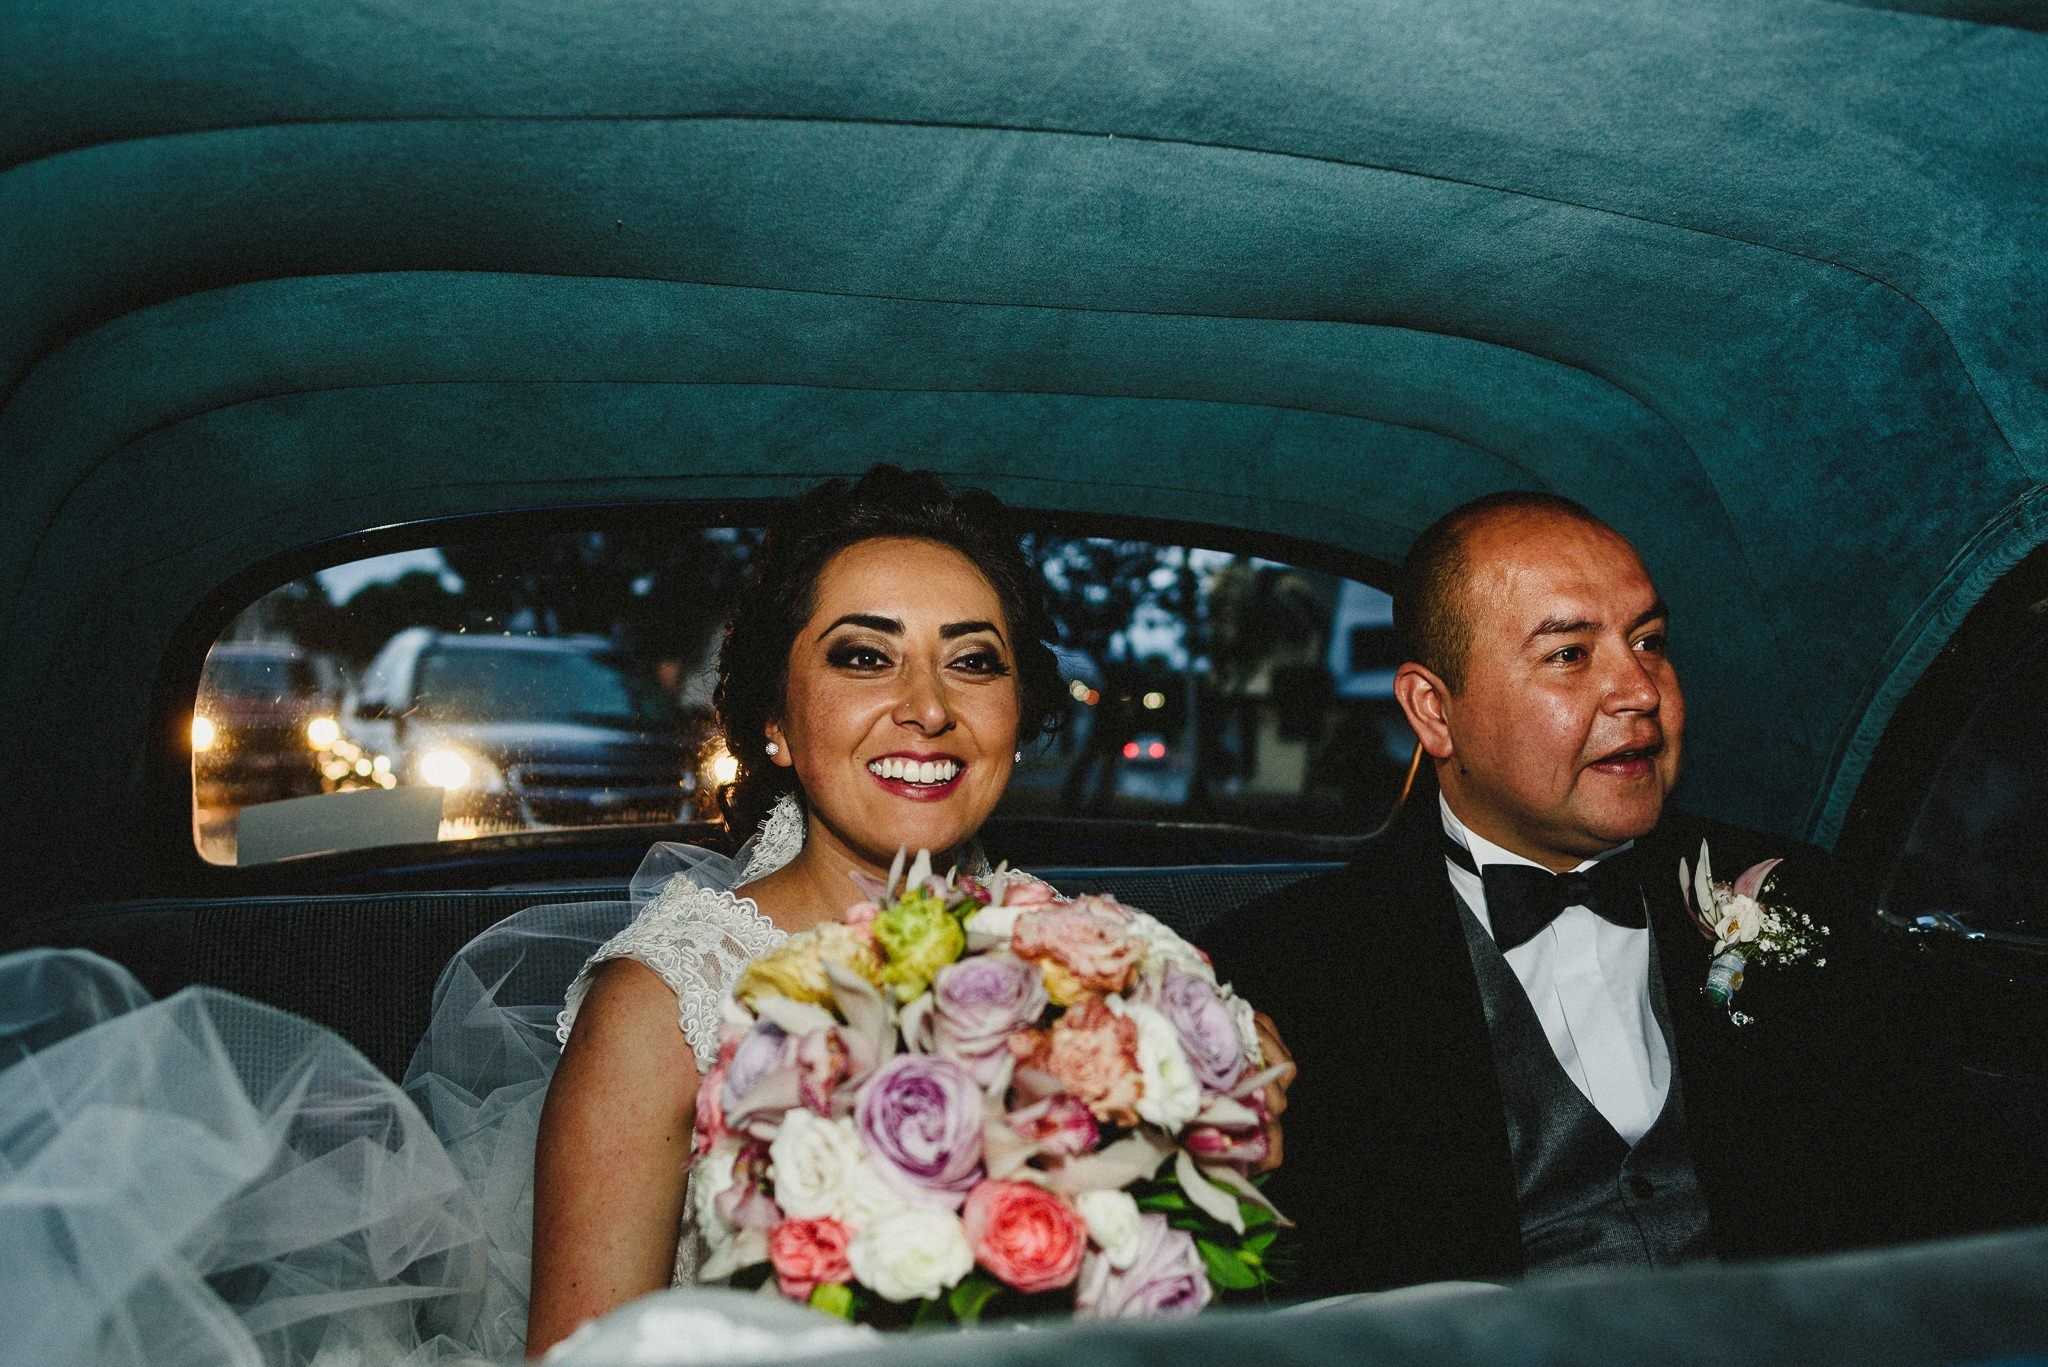 Wedding-Boda-Tulancingo-Hidalgo-Salon-Essenzia-Luis-Houdin-36-film